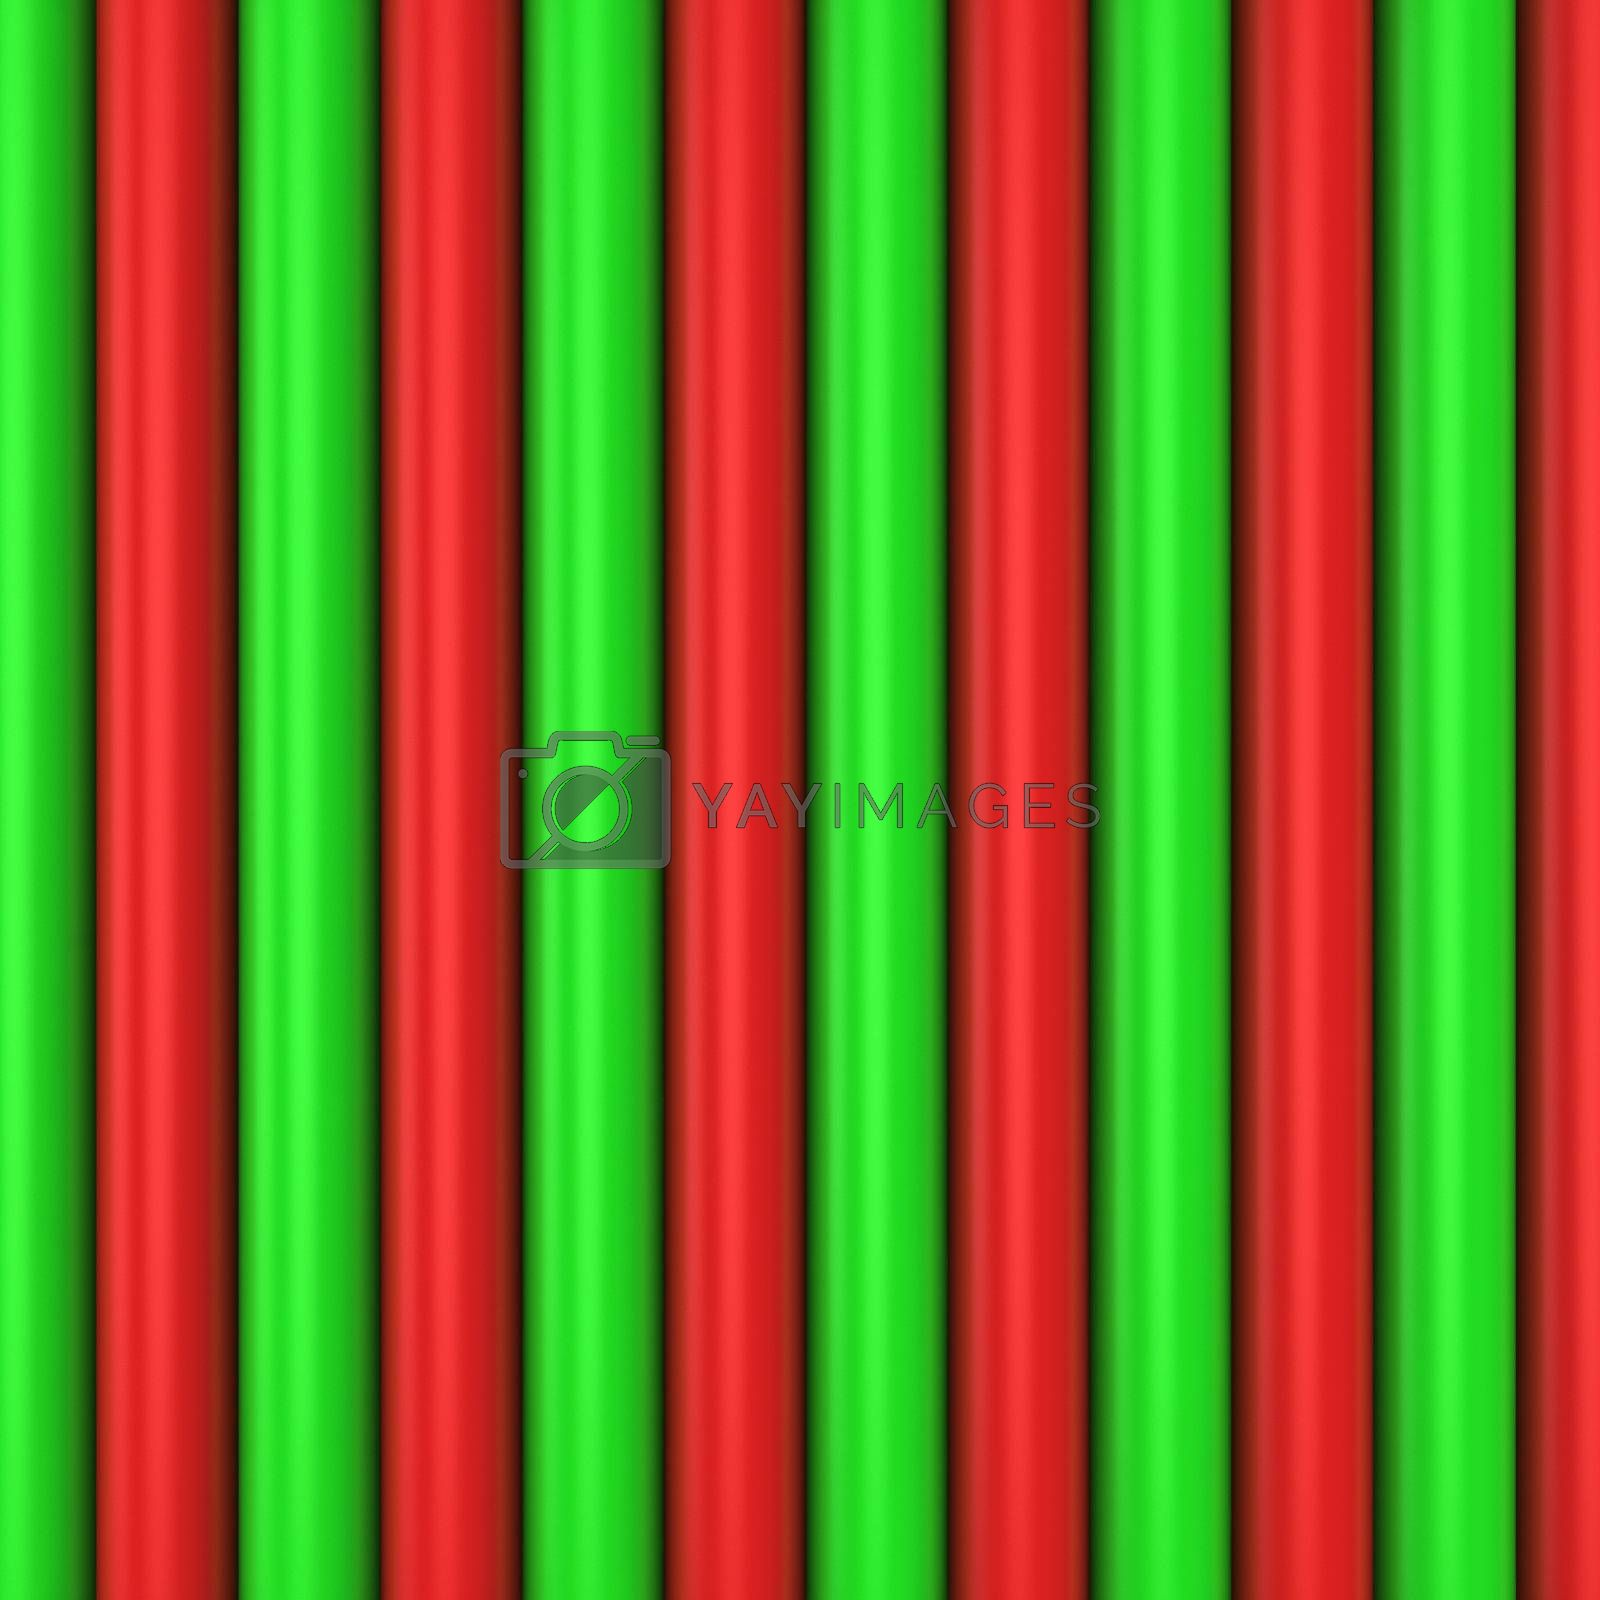 Background made from red and green pipes